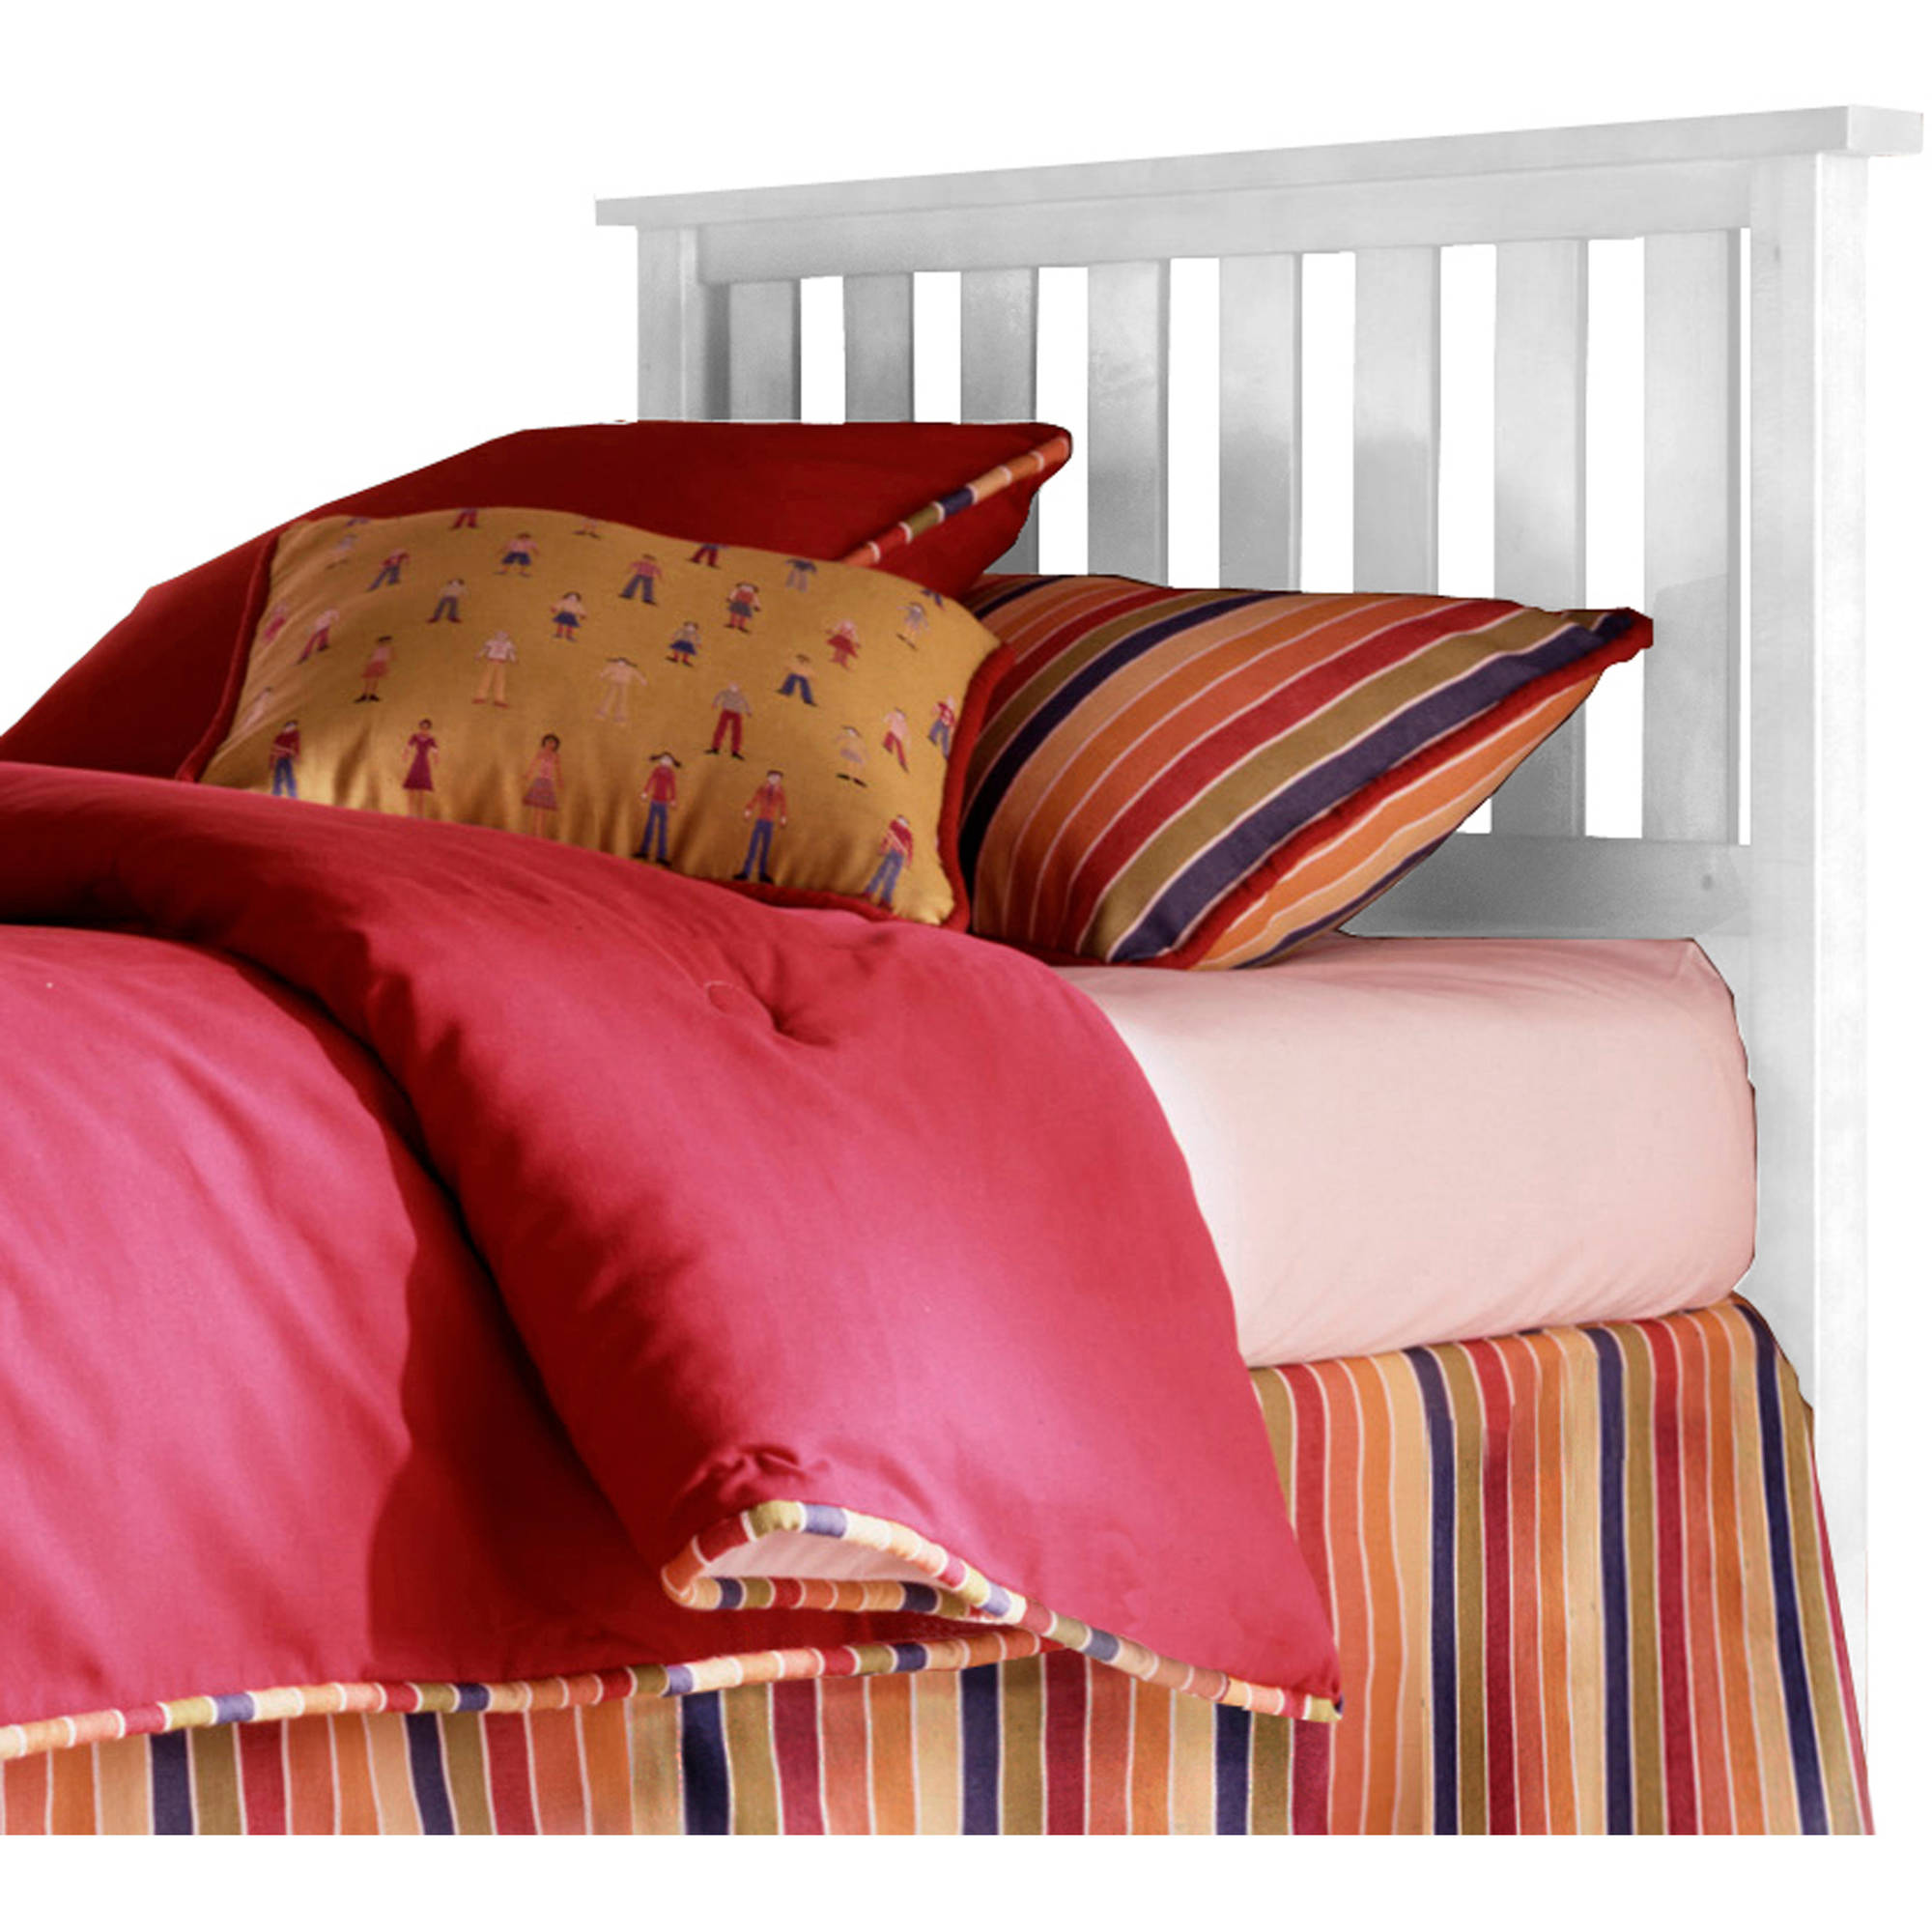 Fashion Bed Group by Leggett & Platt Belmont Headboard, Multiple Sizes & Colors by Fashion Bed Group